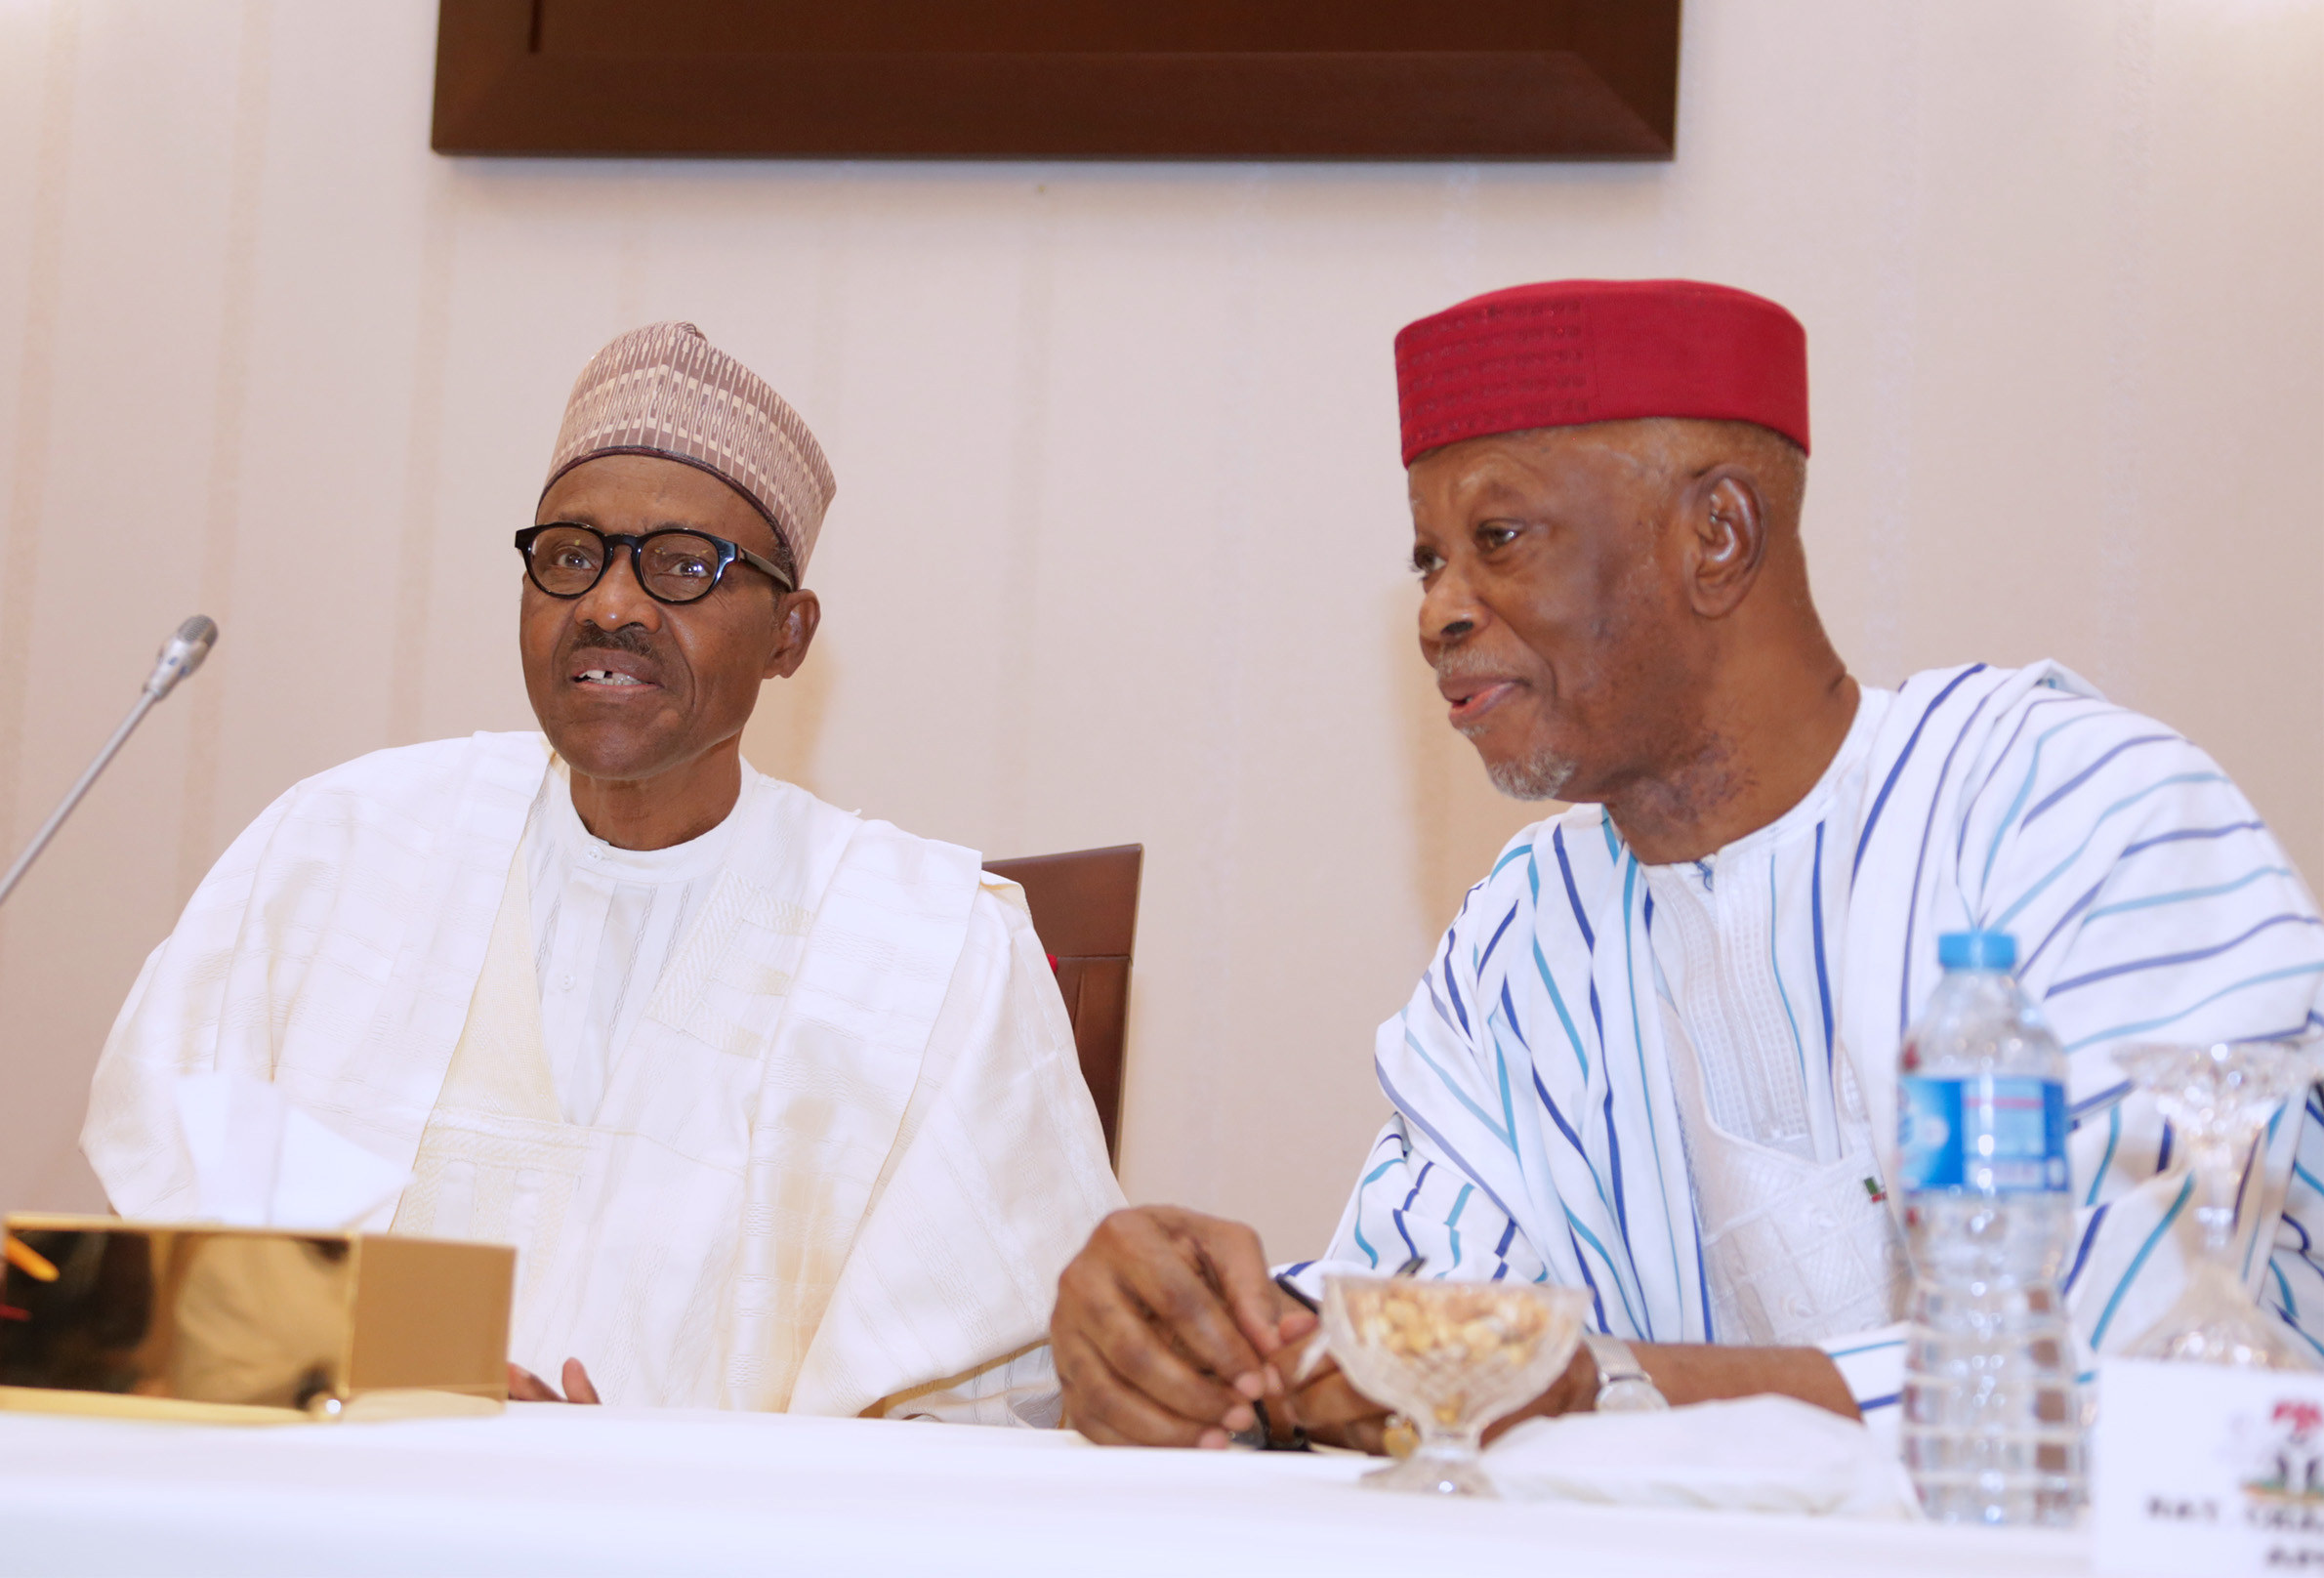 PRESIDENT BUHARI CHAIRS 4TH NAT APC CAUCUS MEETING 2A&B.. L-R; President Muhammadu Buhari and APC National Chairman, Chief John Odigie Oyegun during the Party' 4th National Caucus Meeting held Monday night at the Presidential Villa Abuja. PHOTO; SUNDAY AGHAEZE. FEB 26 2018